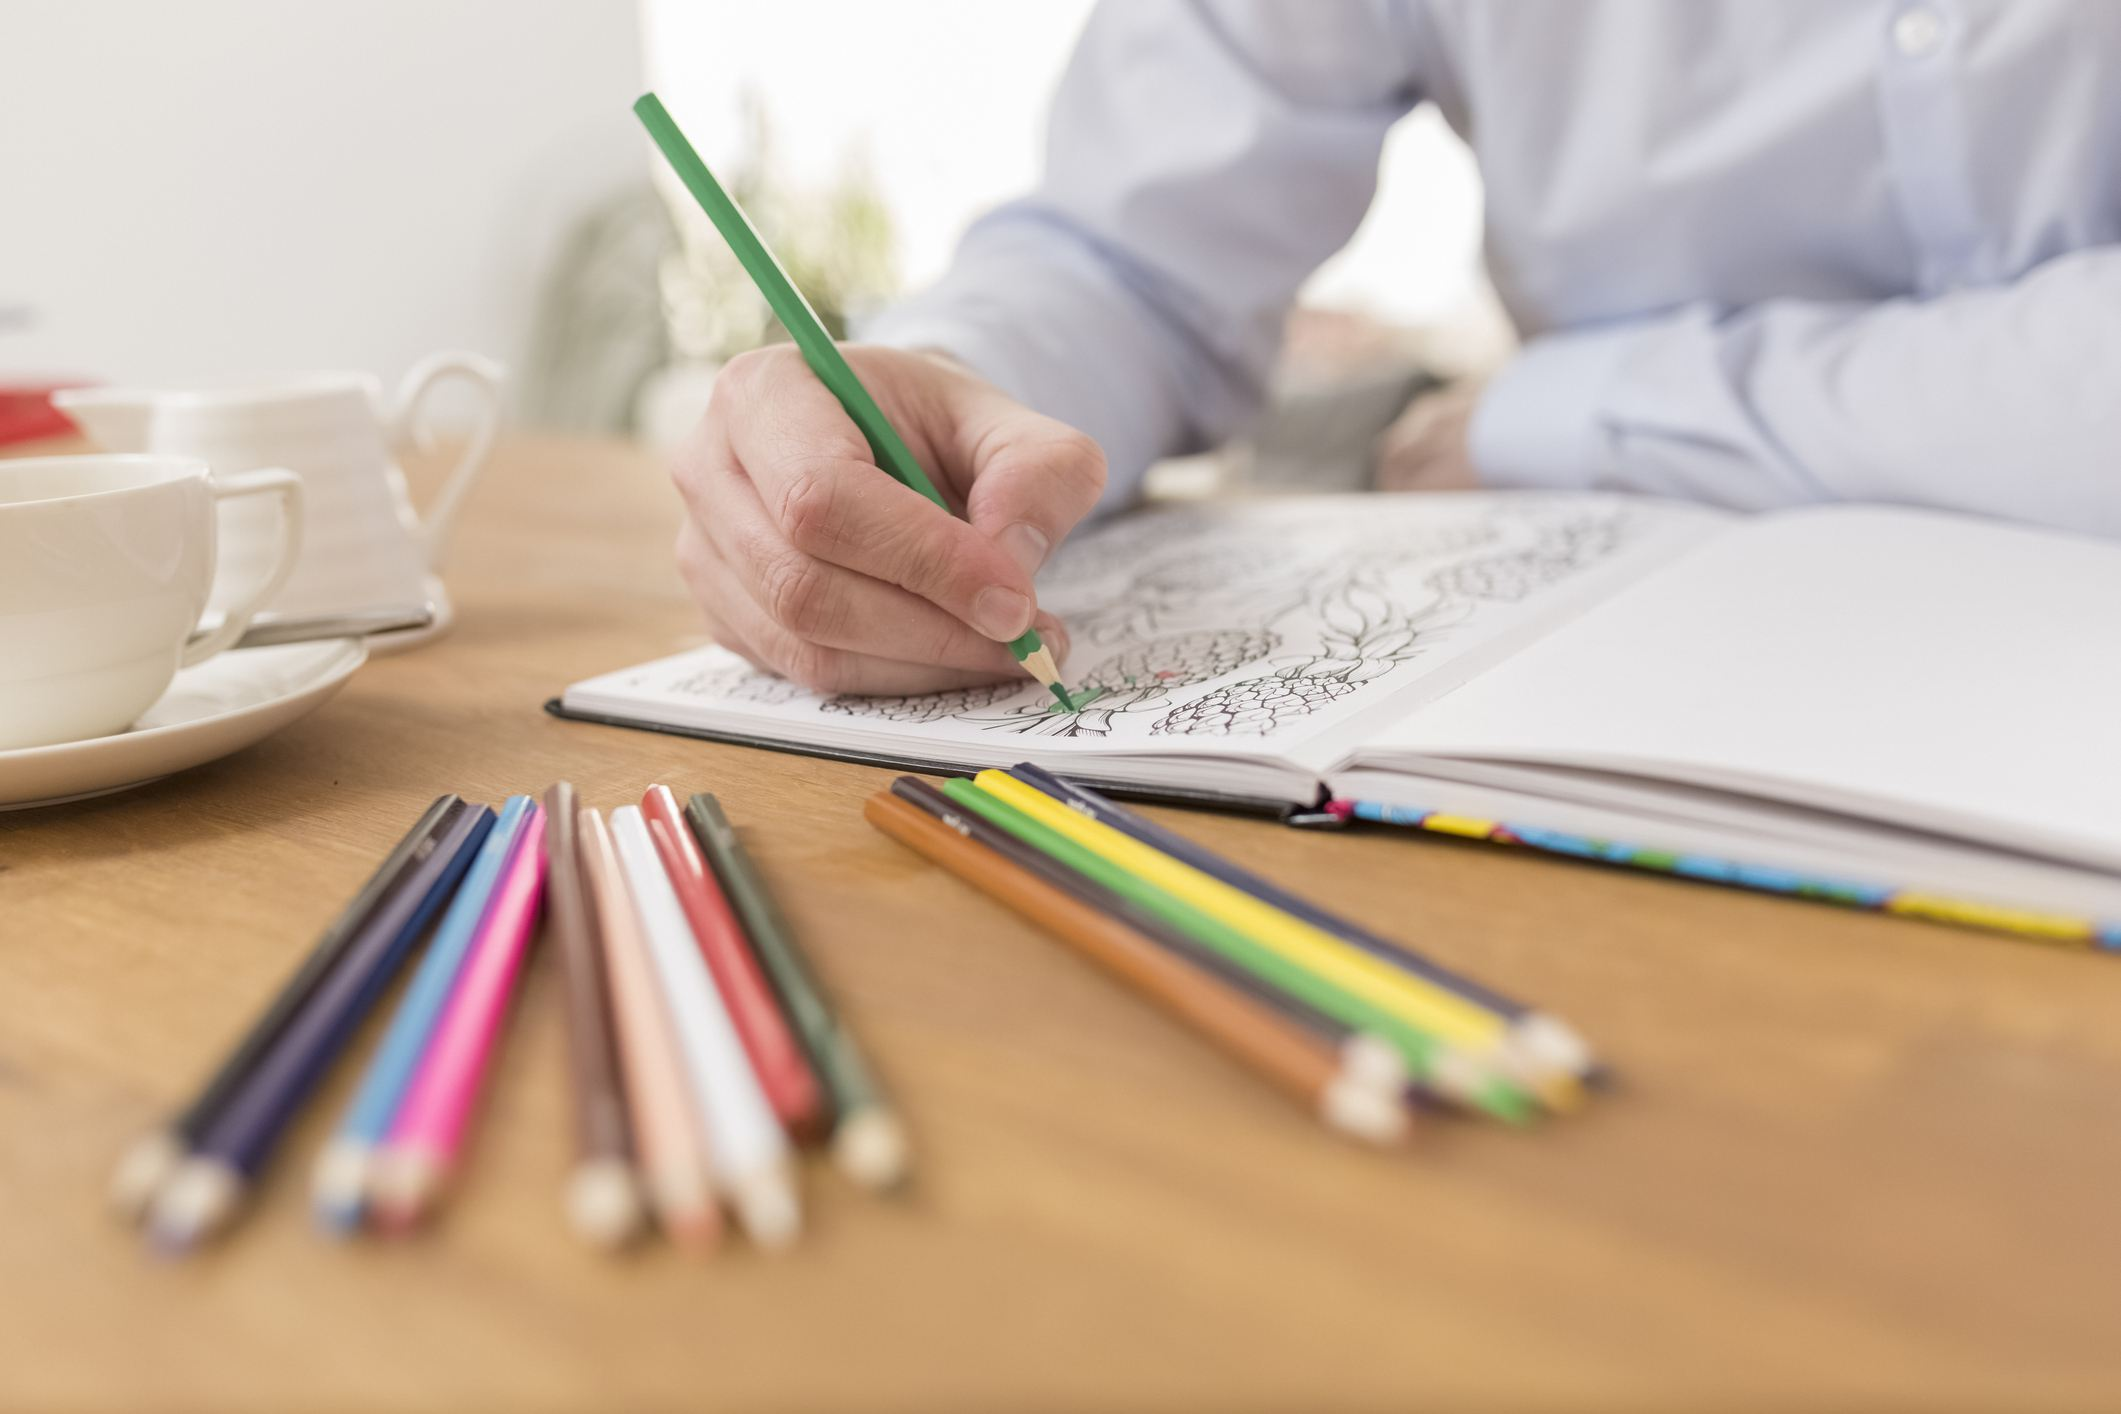 Close up of a man's hand as he colors in an adult coloring book.